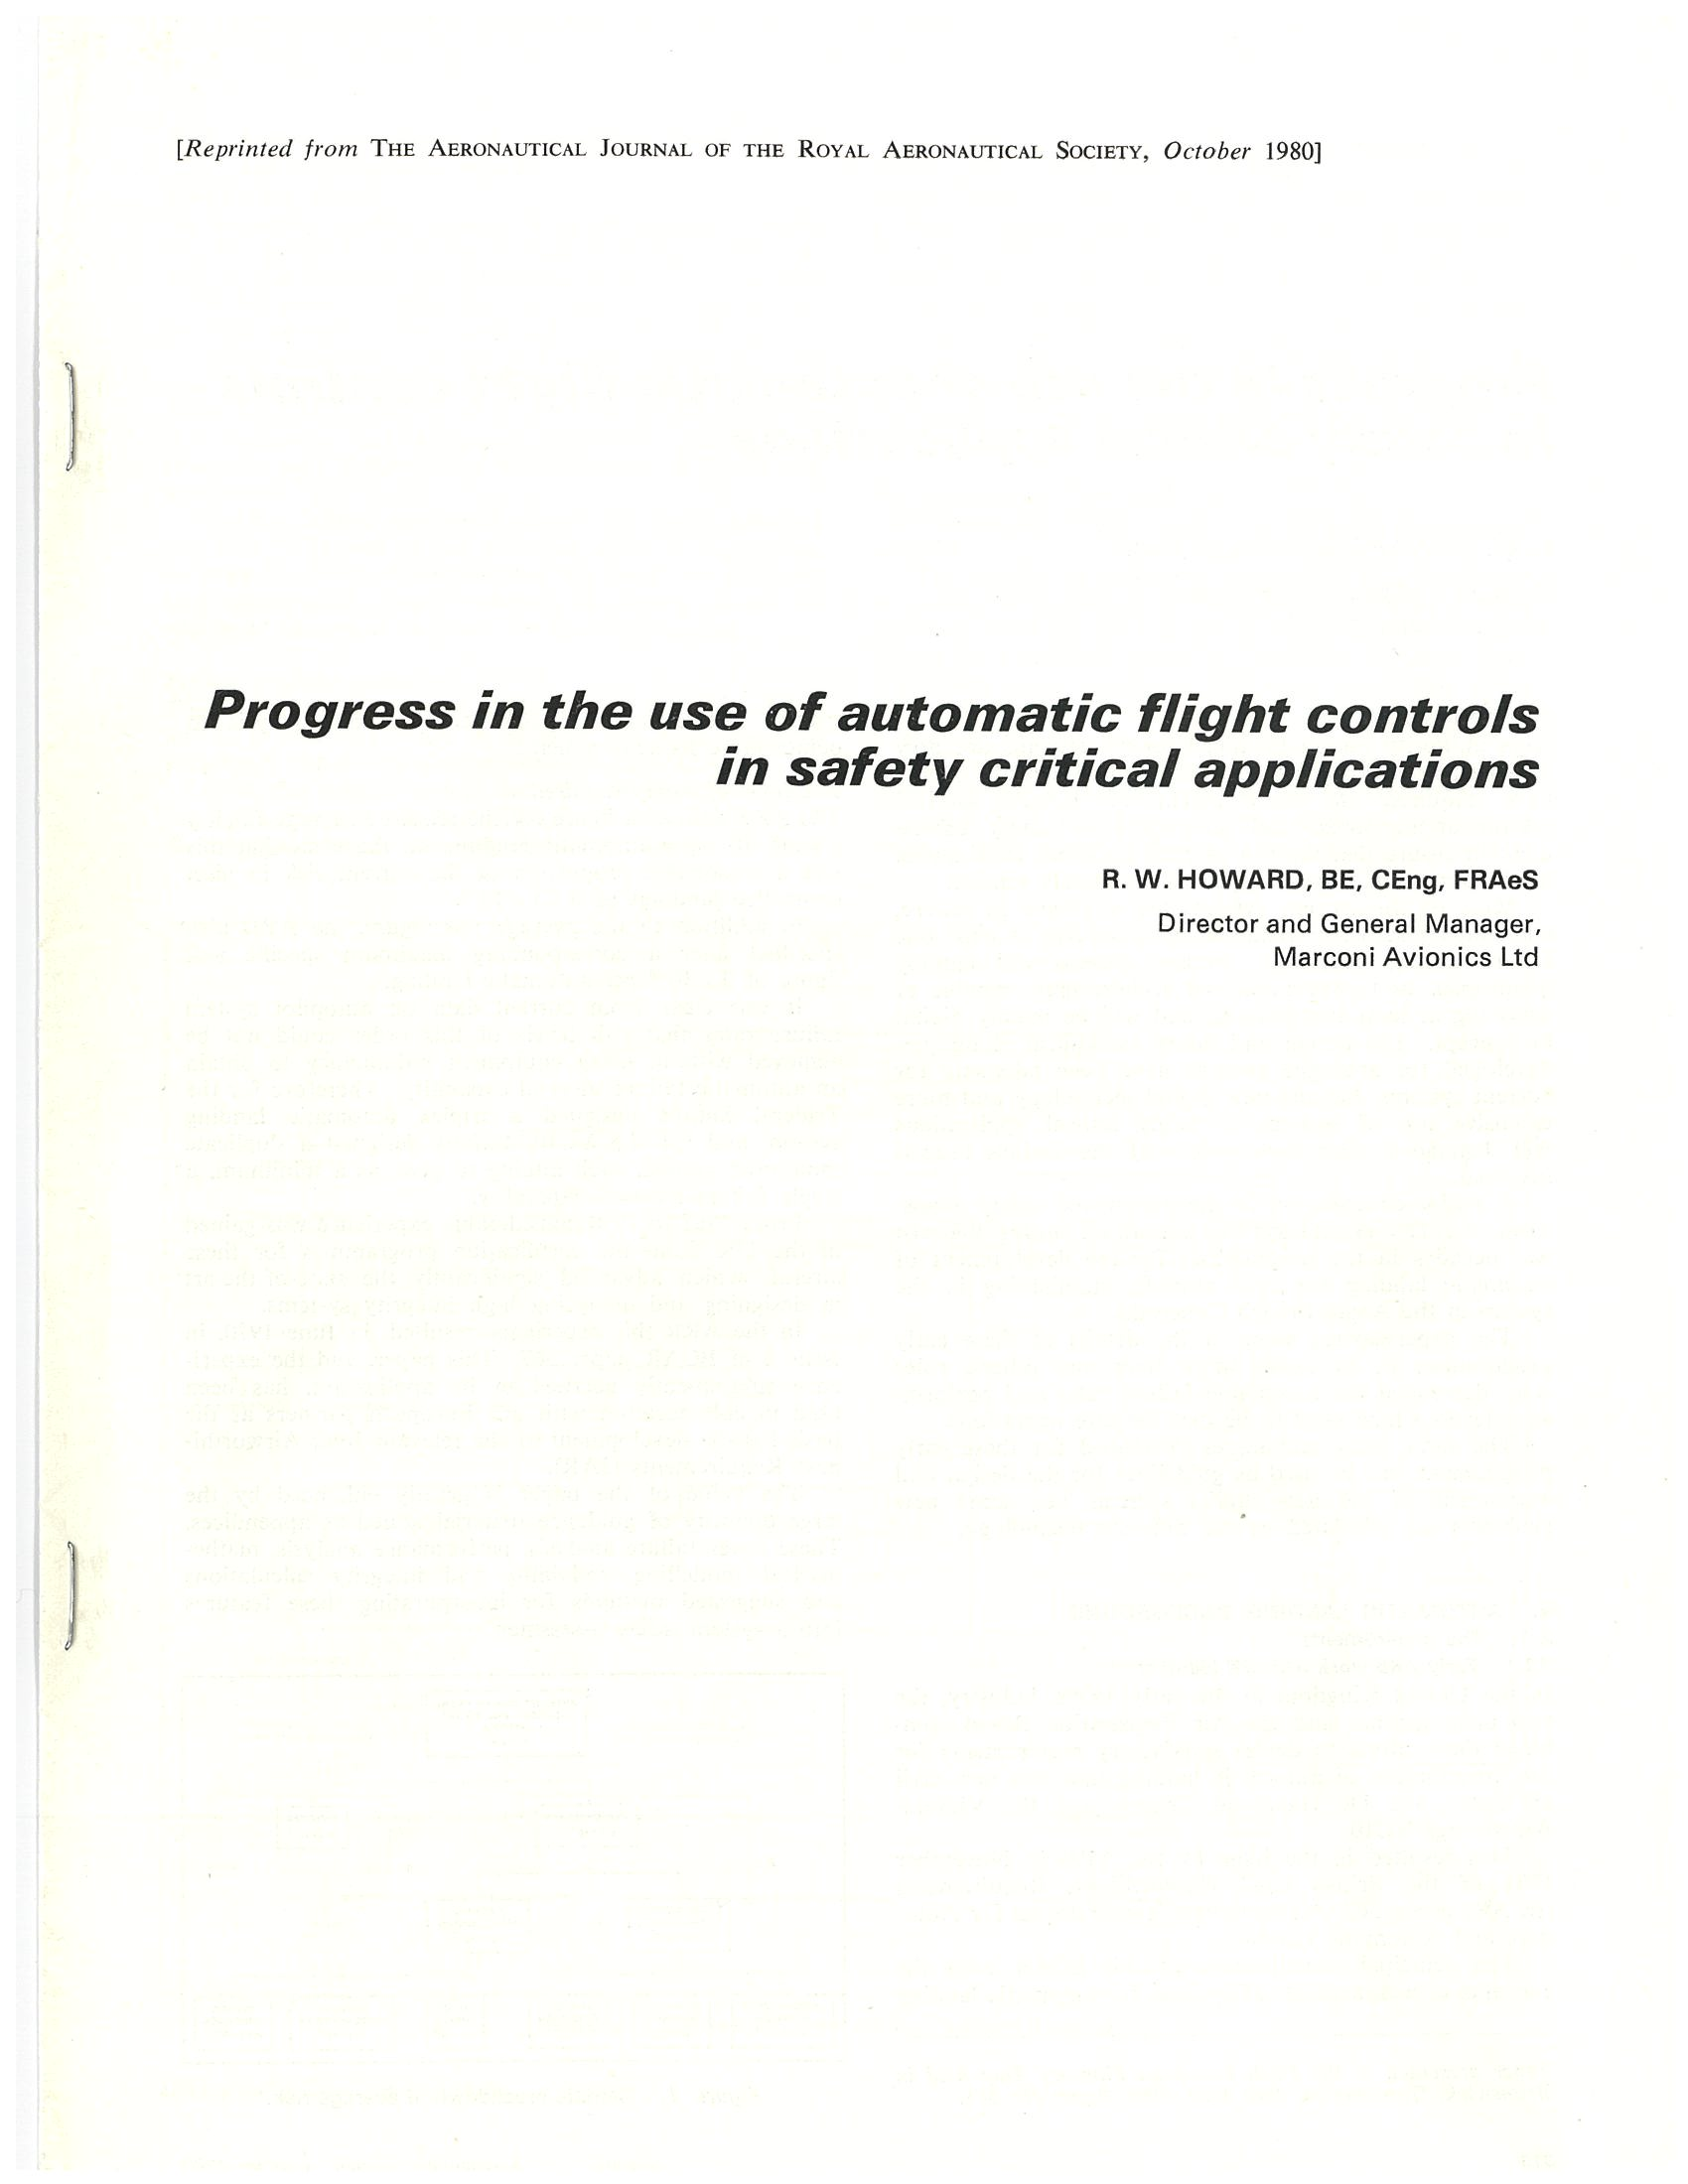 Progress in the use of automatic flight controls in safety critical applications.